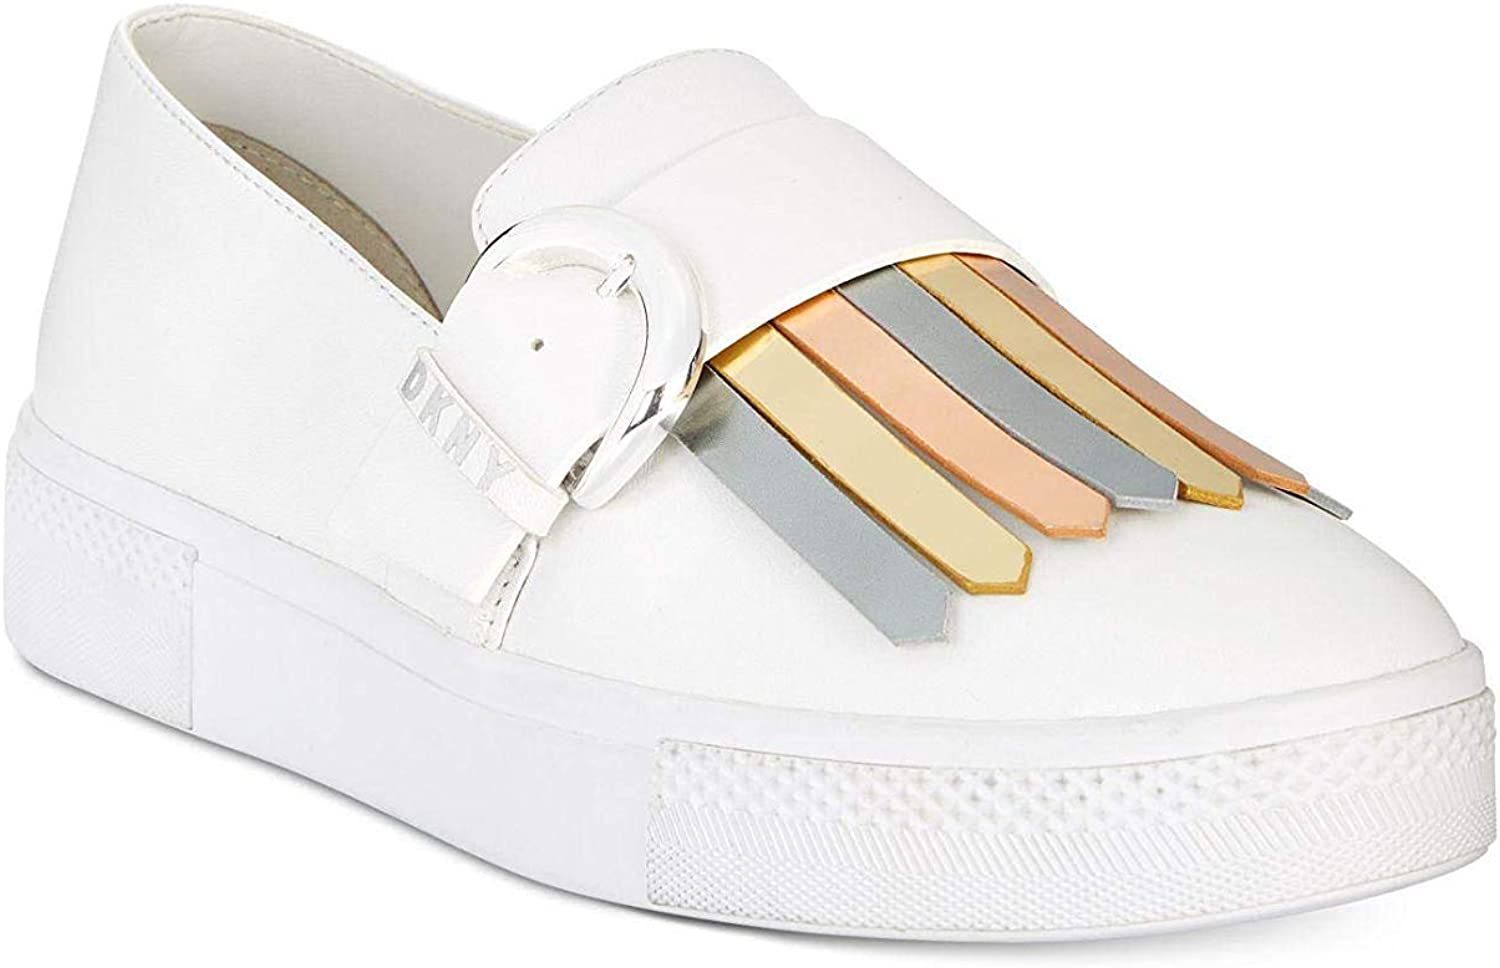 DKNY Womens Jules Leather Low Top Slip On Fashion Sneakers